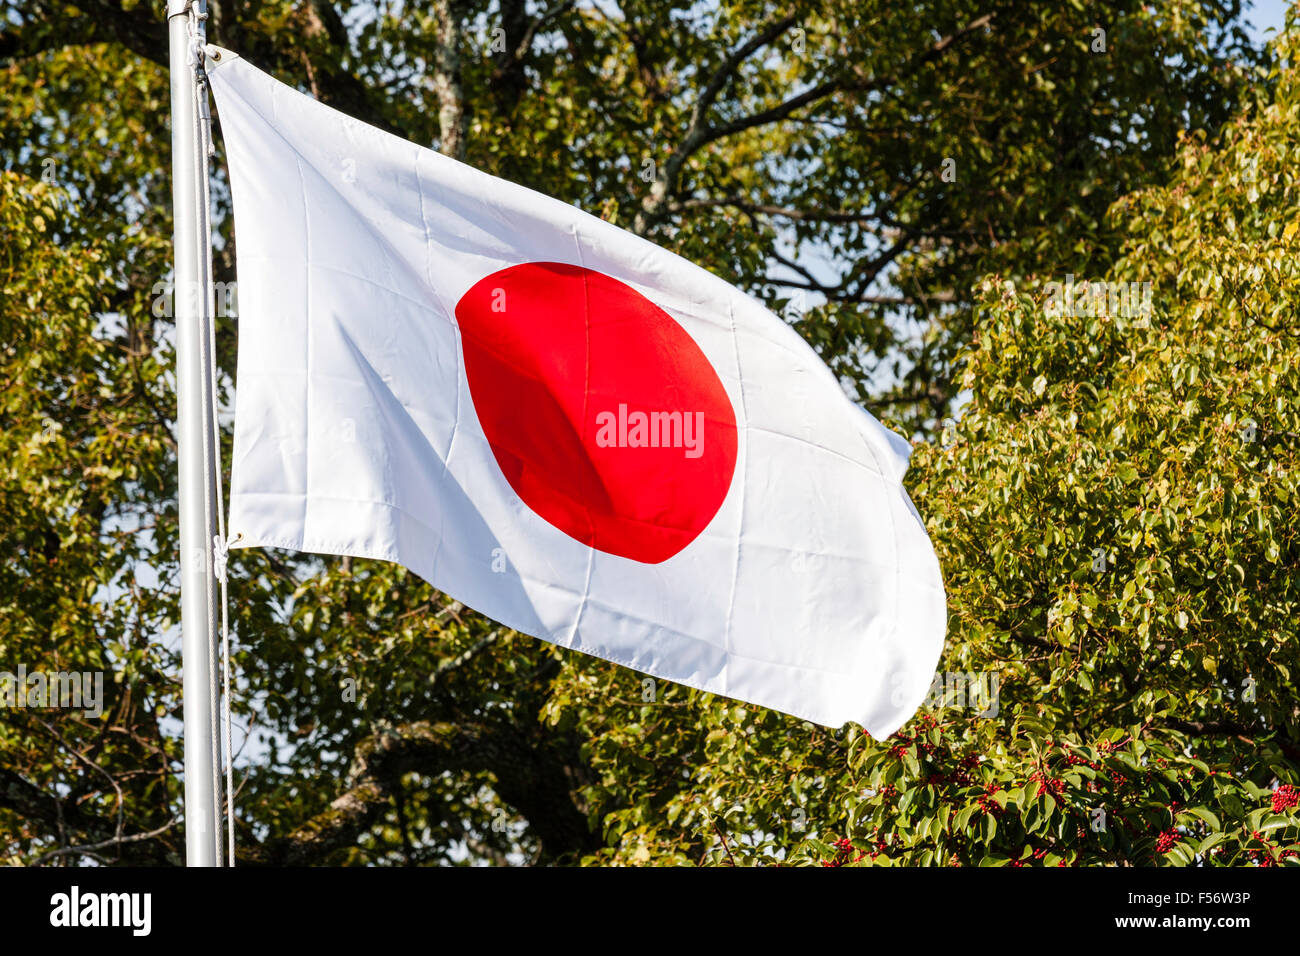 Japanese flag, 'rising sun', fluttering in wind and sunlight against background of tree branches and green - Stock Image